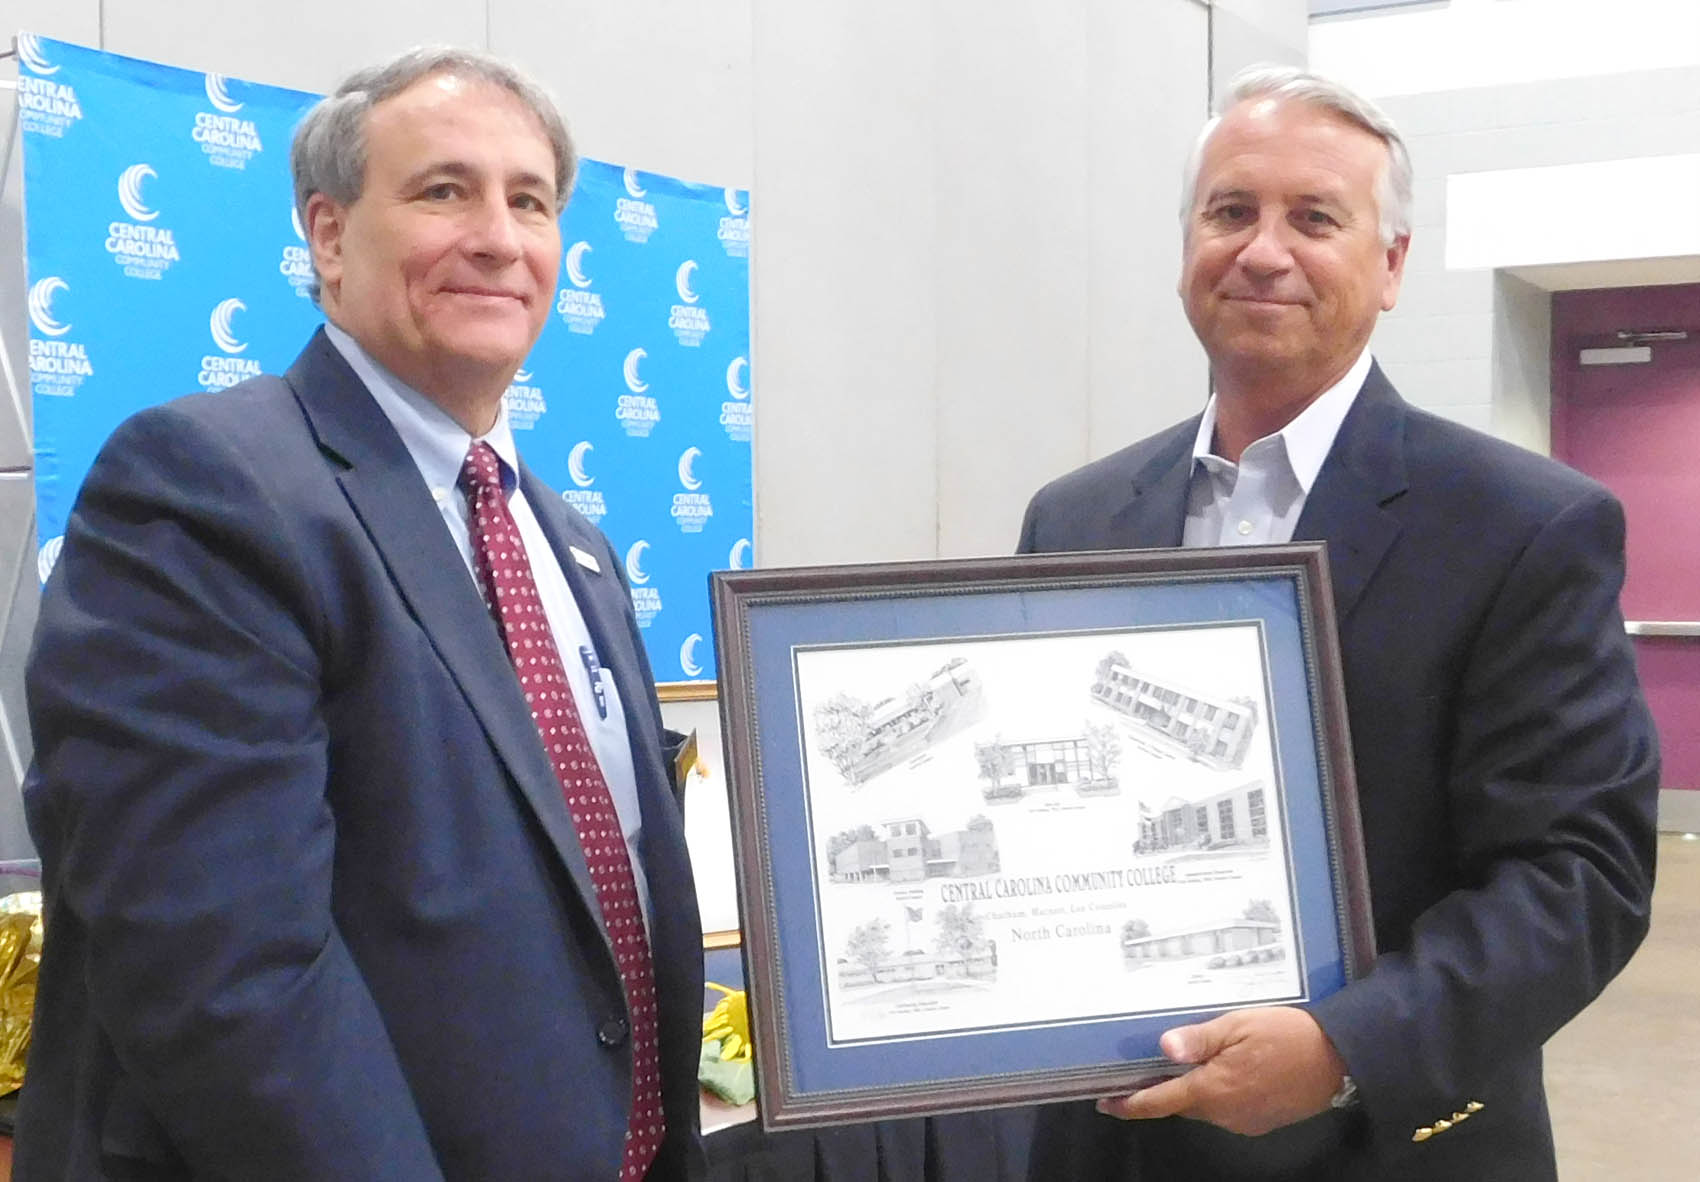 Click to enlarge,  Donnie Oldham (right), pictured with CCCC Board of Trustees Chairman Julian Philpott (left), was presented with a Jerry Miller print of CCCC buildings, as he was honored for his service as a CCCC Trustee.